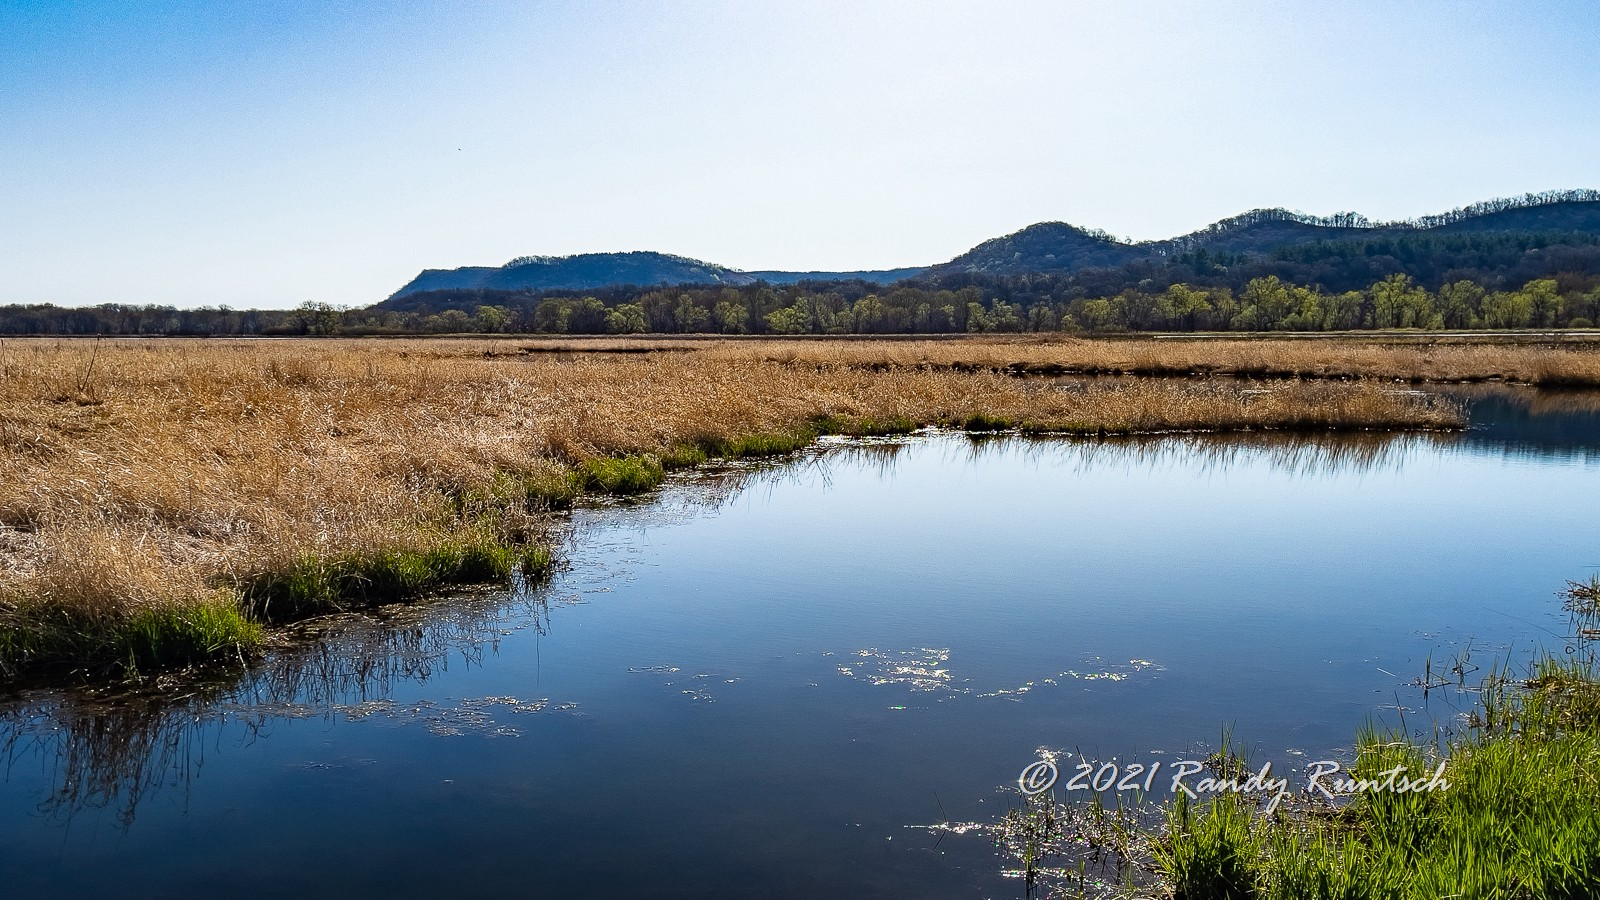 View of one of 15 pools in Whitewater Wildlife Management Area.